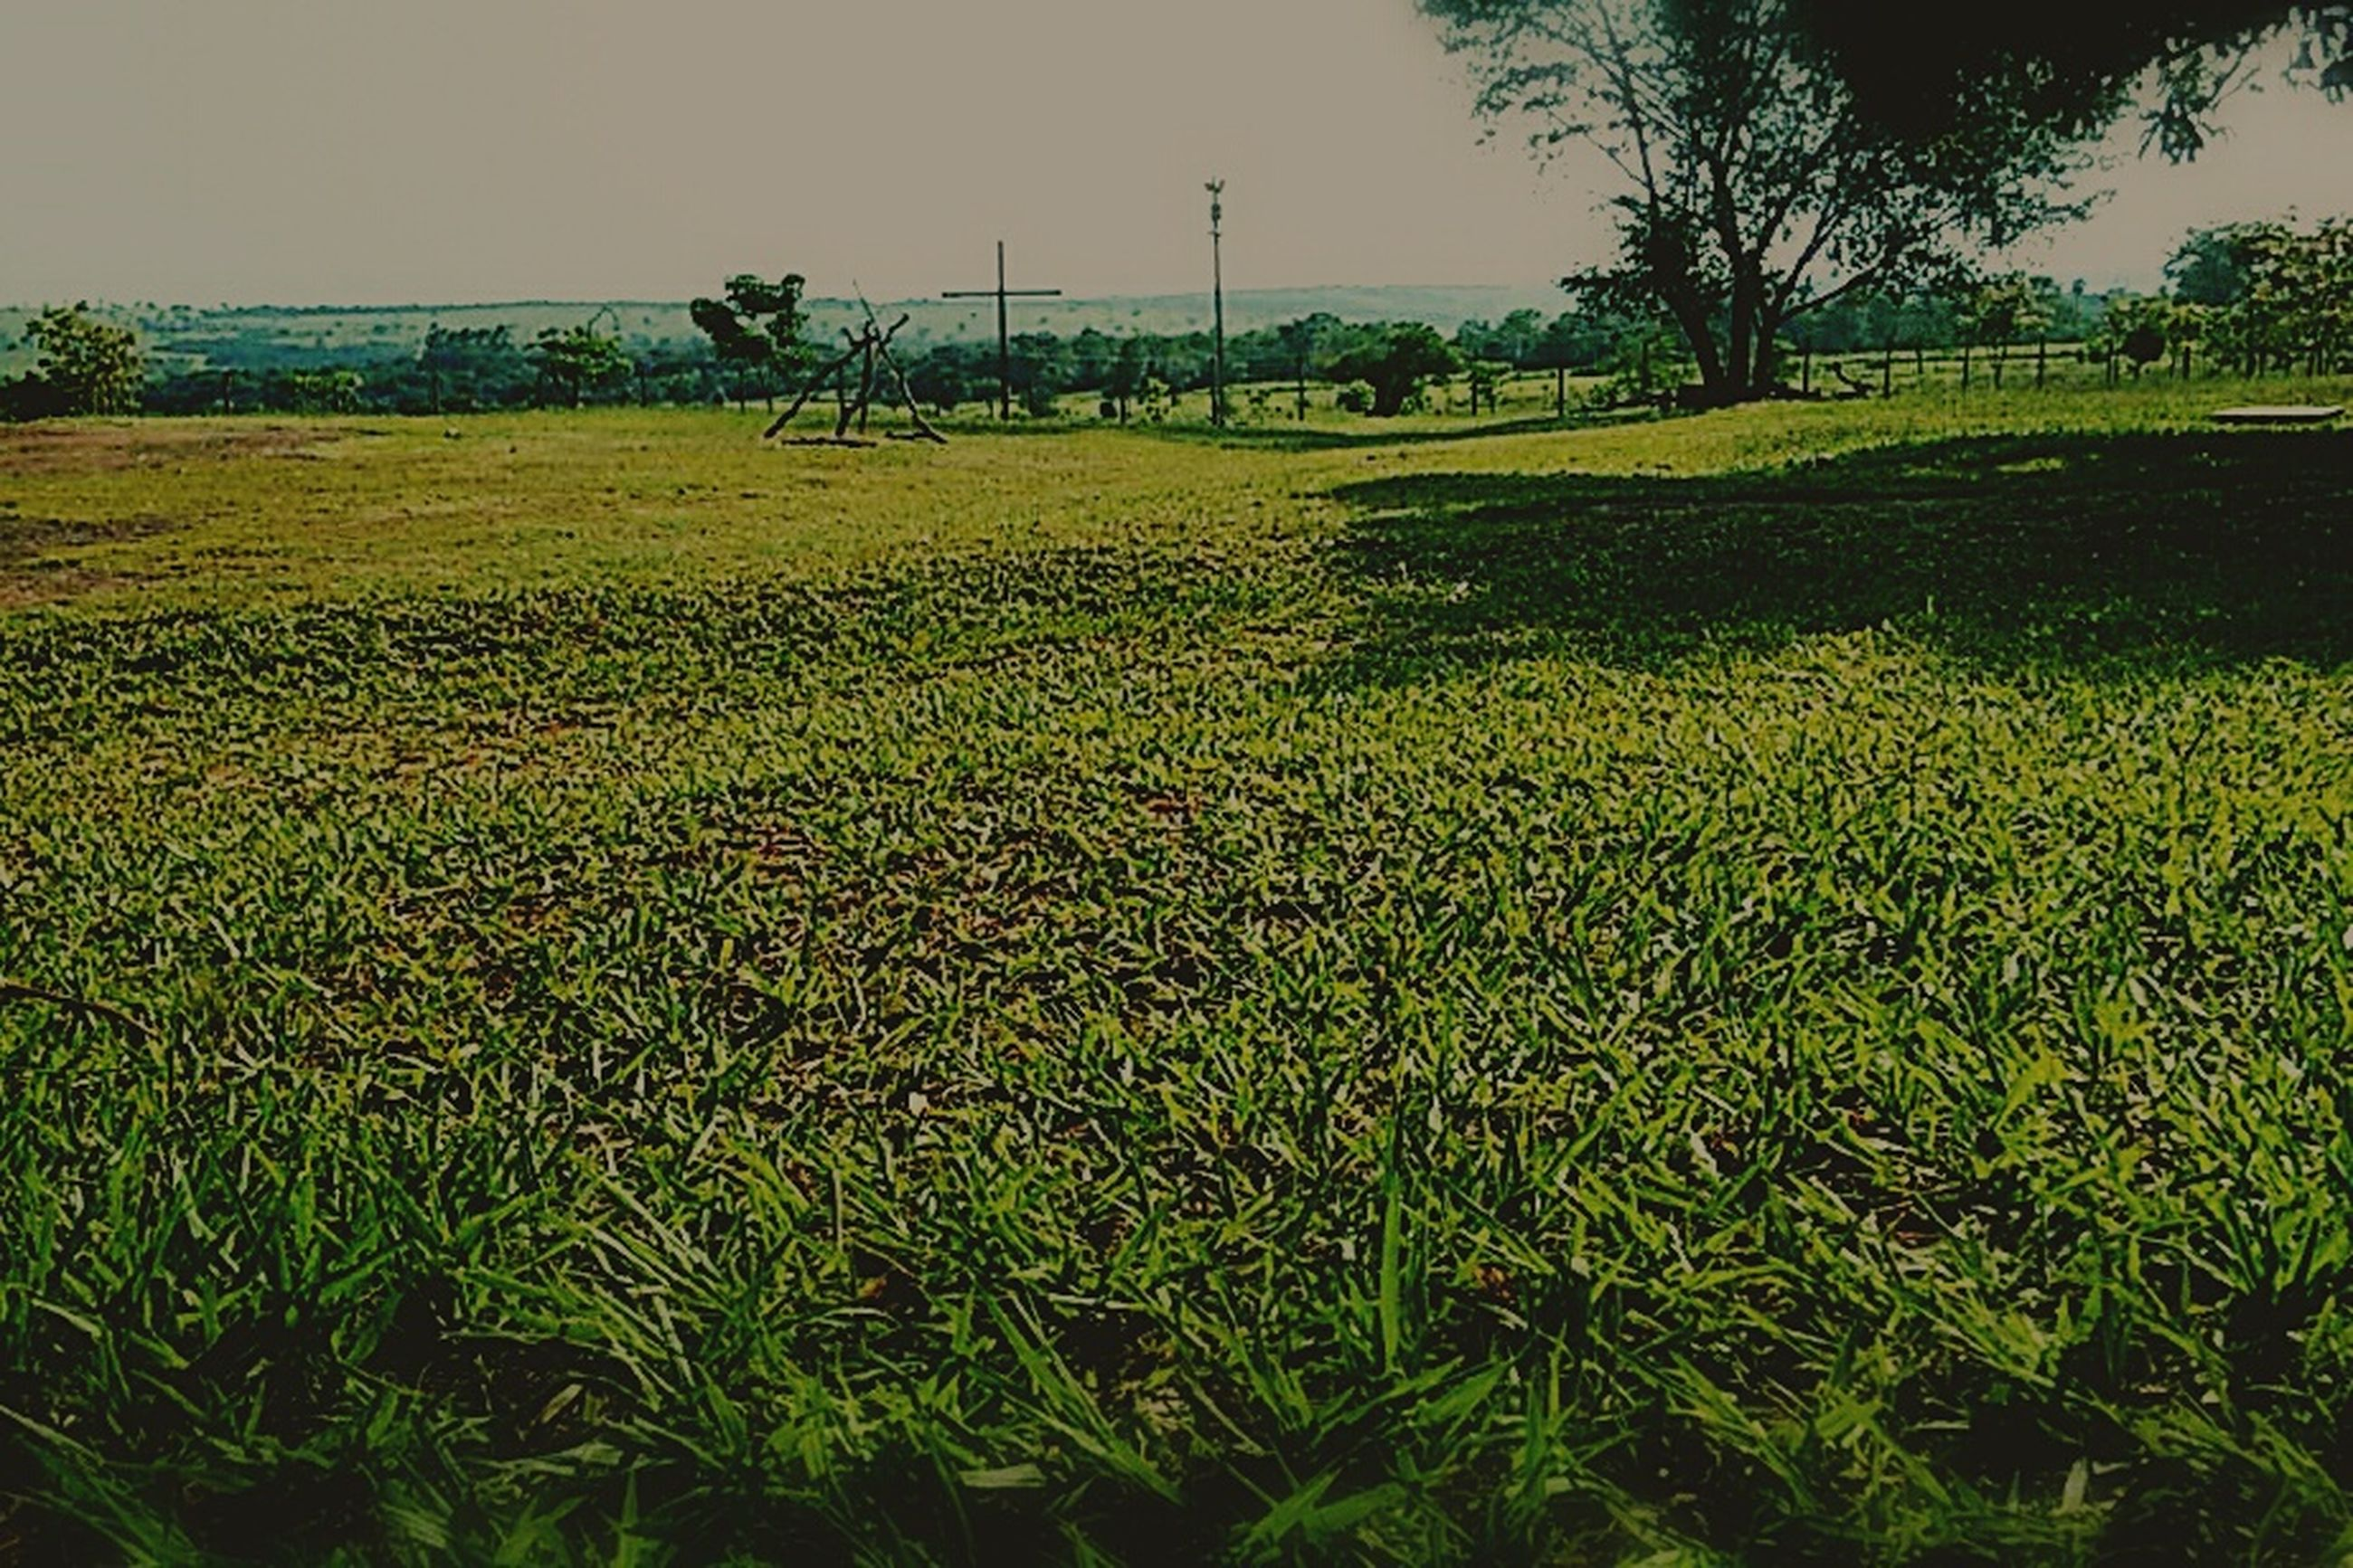 grass, field, growth, beauty in nature, tranquil scene, tranquility, nature, green color, scenics, flower, landscape, grassy, plant, yellow, sky, tree, rural scene, idyllic, outdoors, clear sky